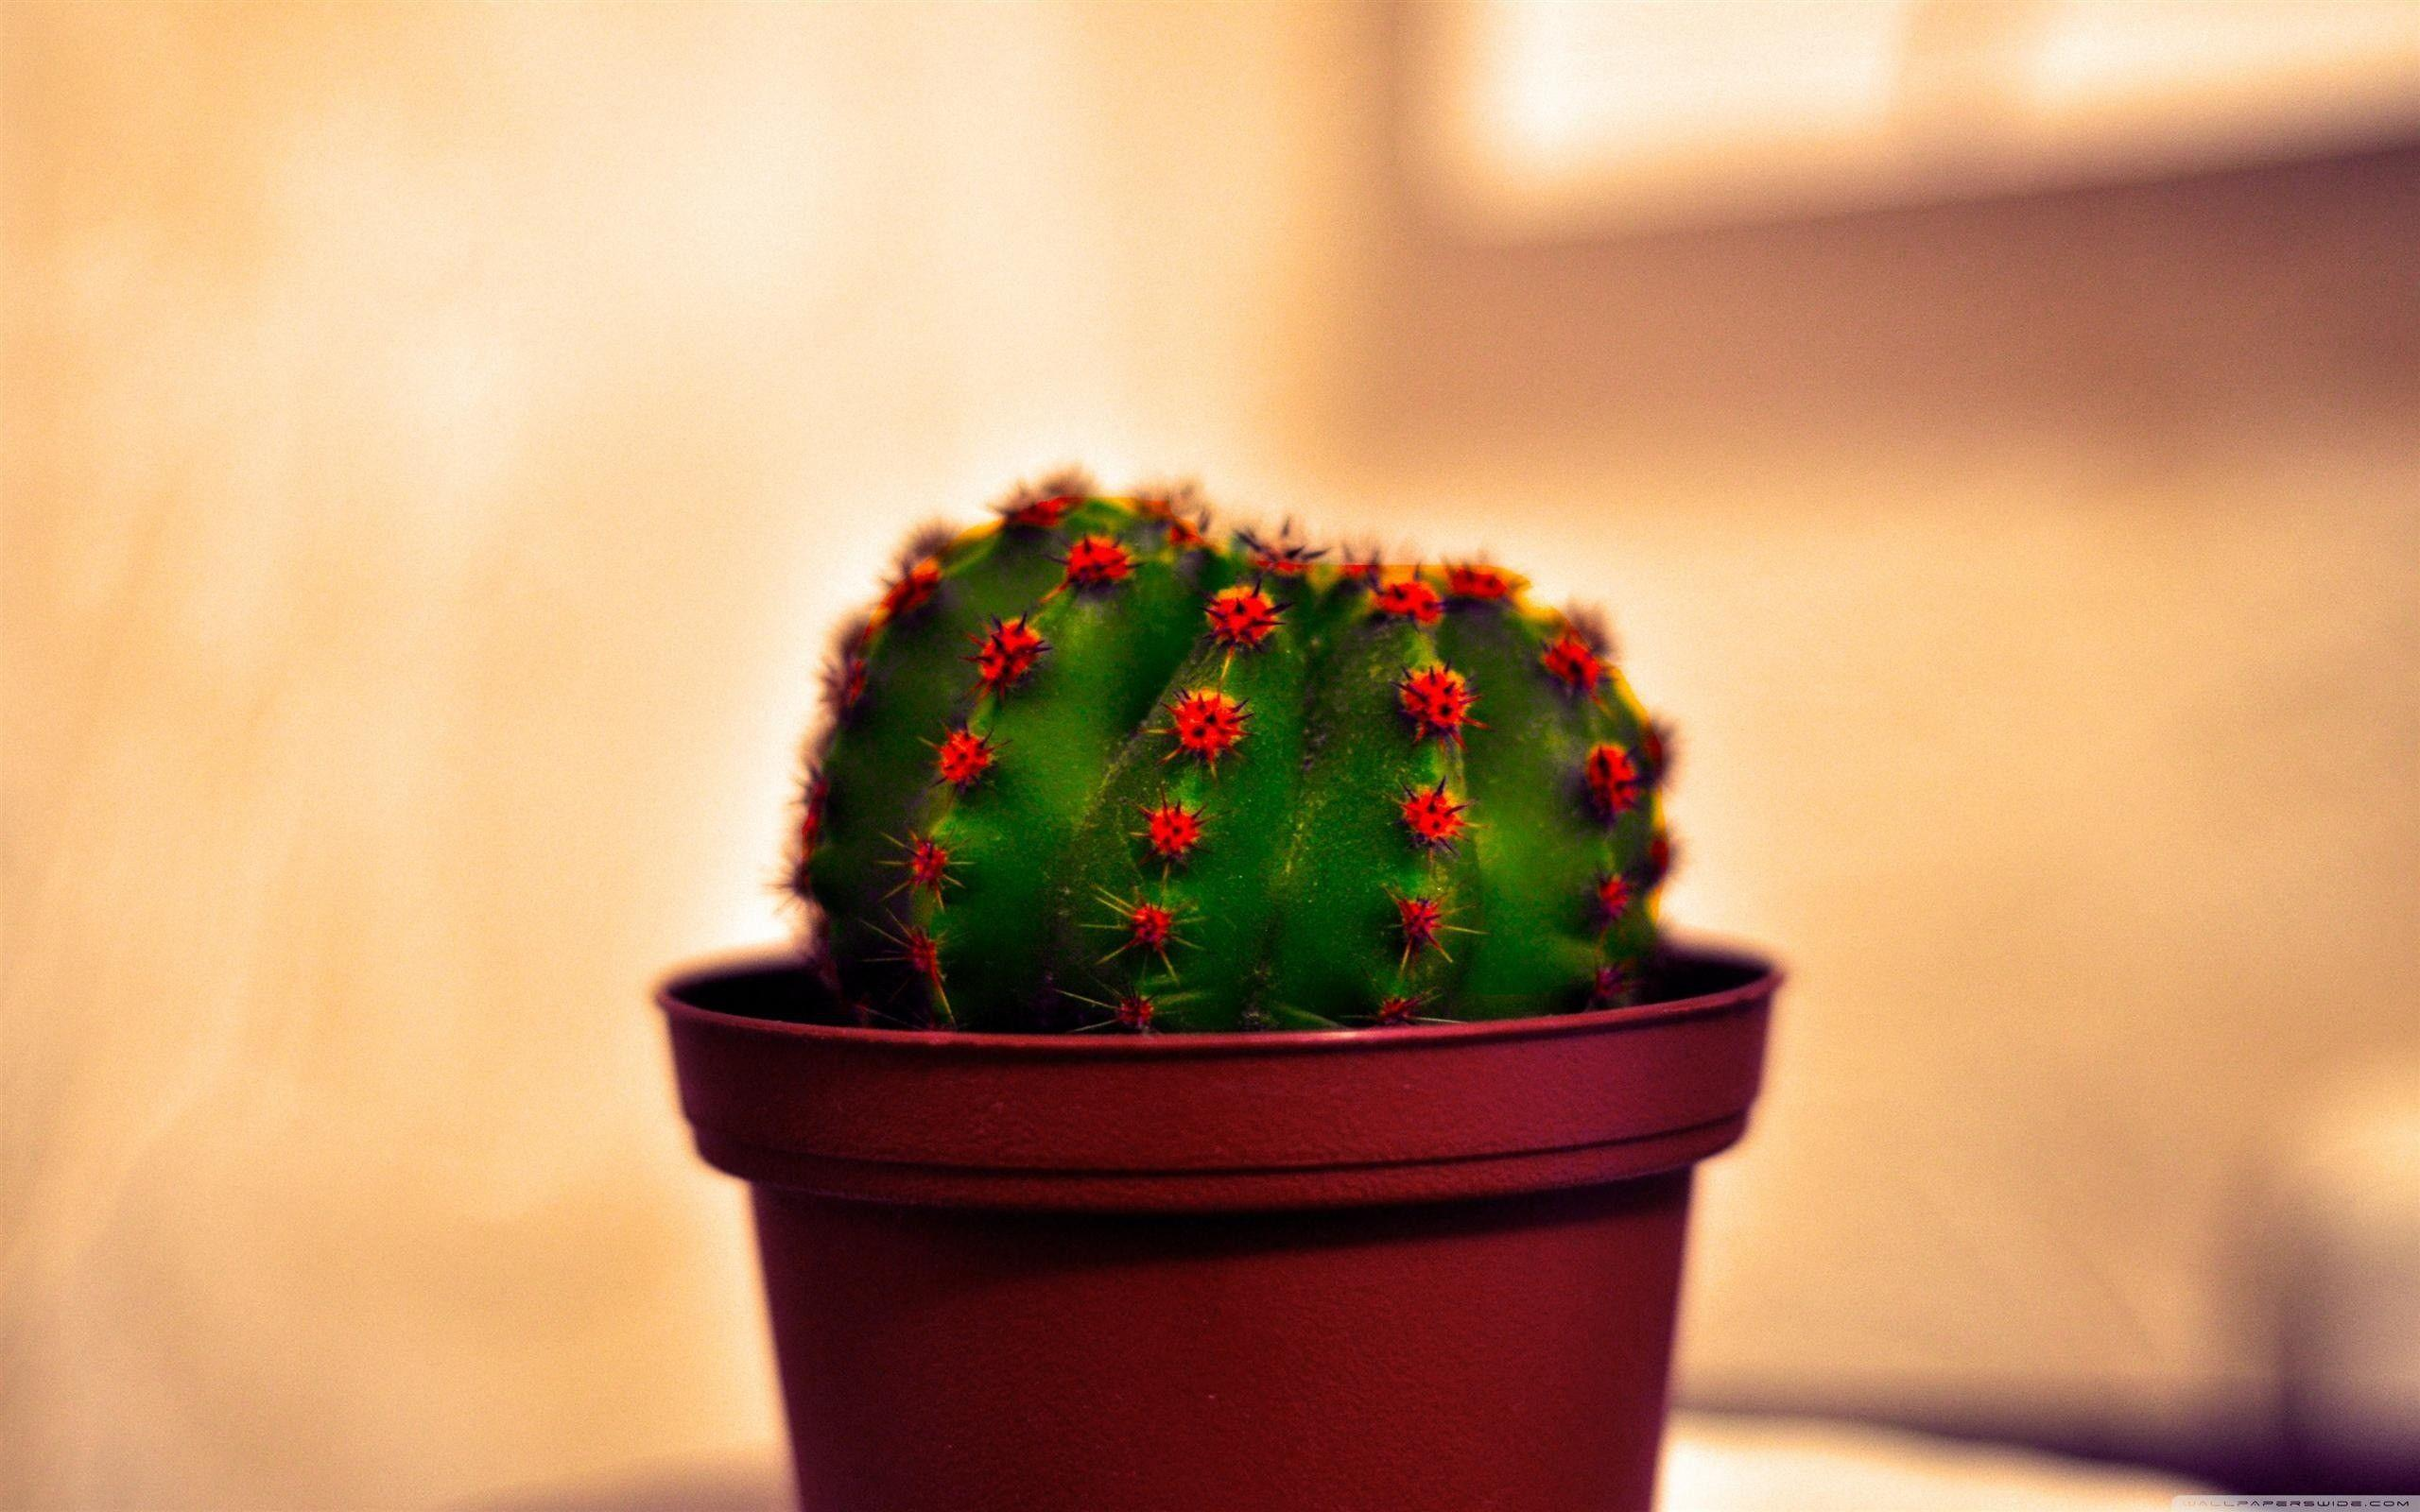 hd cactus wallpapers - photo #36